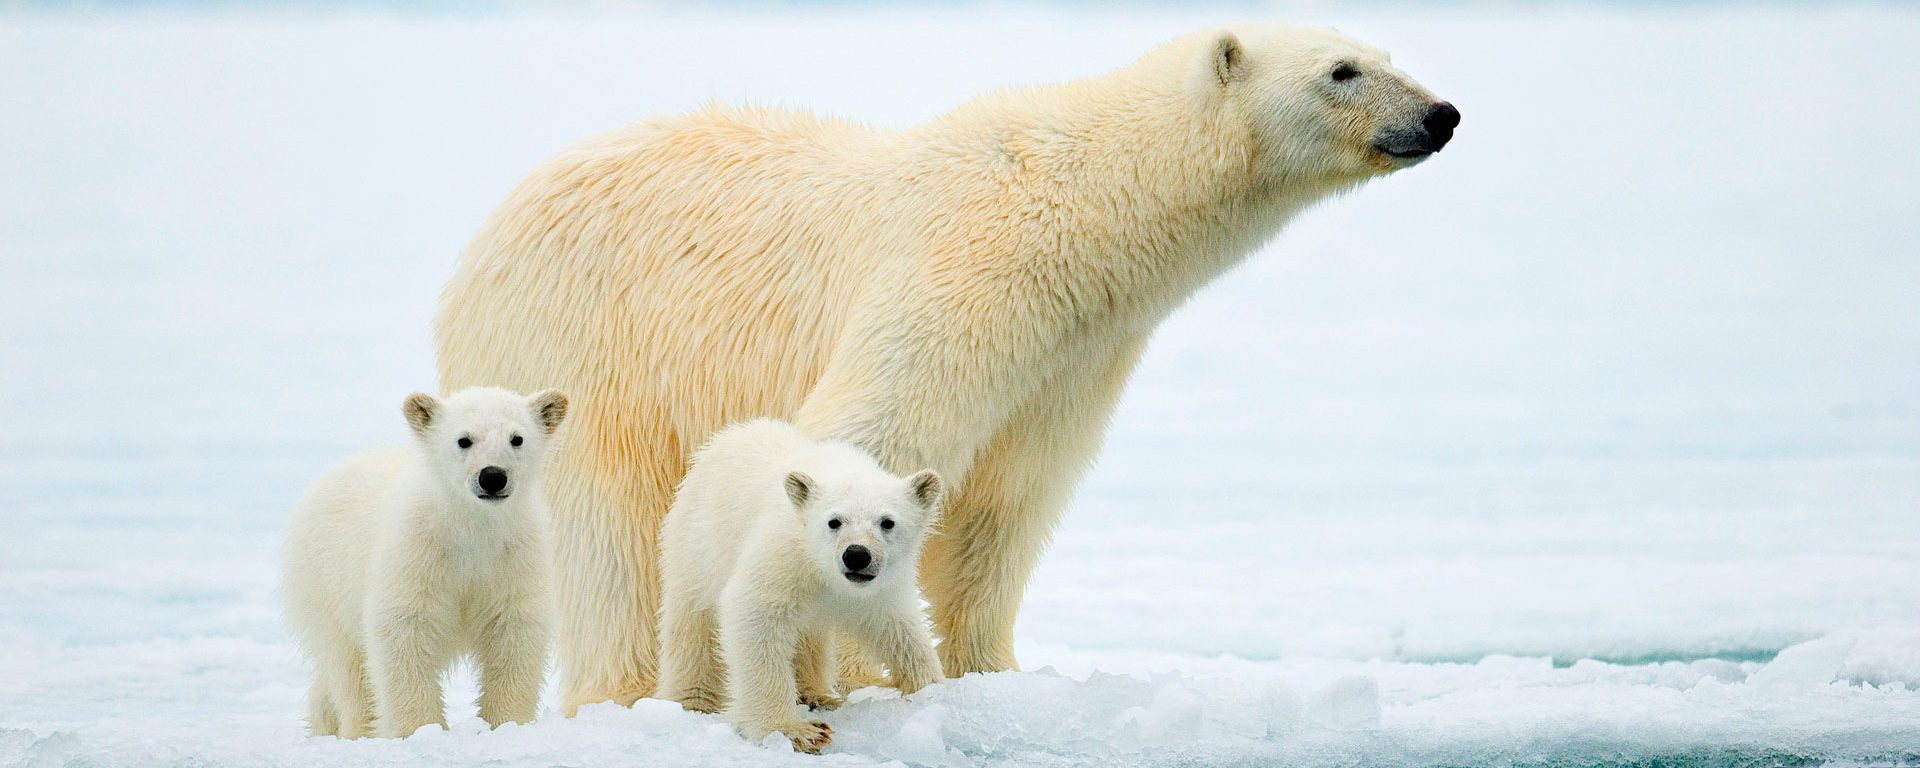 Polar bear mother and twin cubs hunting on the pack ice, Svalbard Archipelago, Arctic Norway